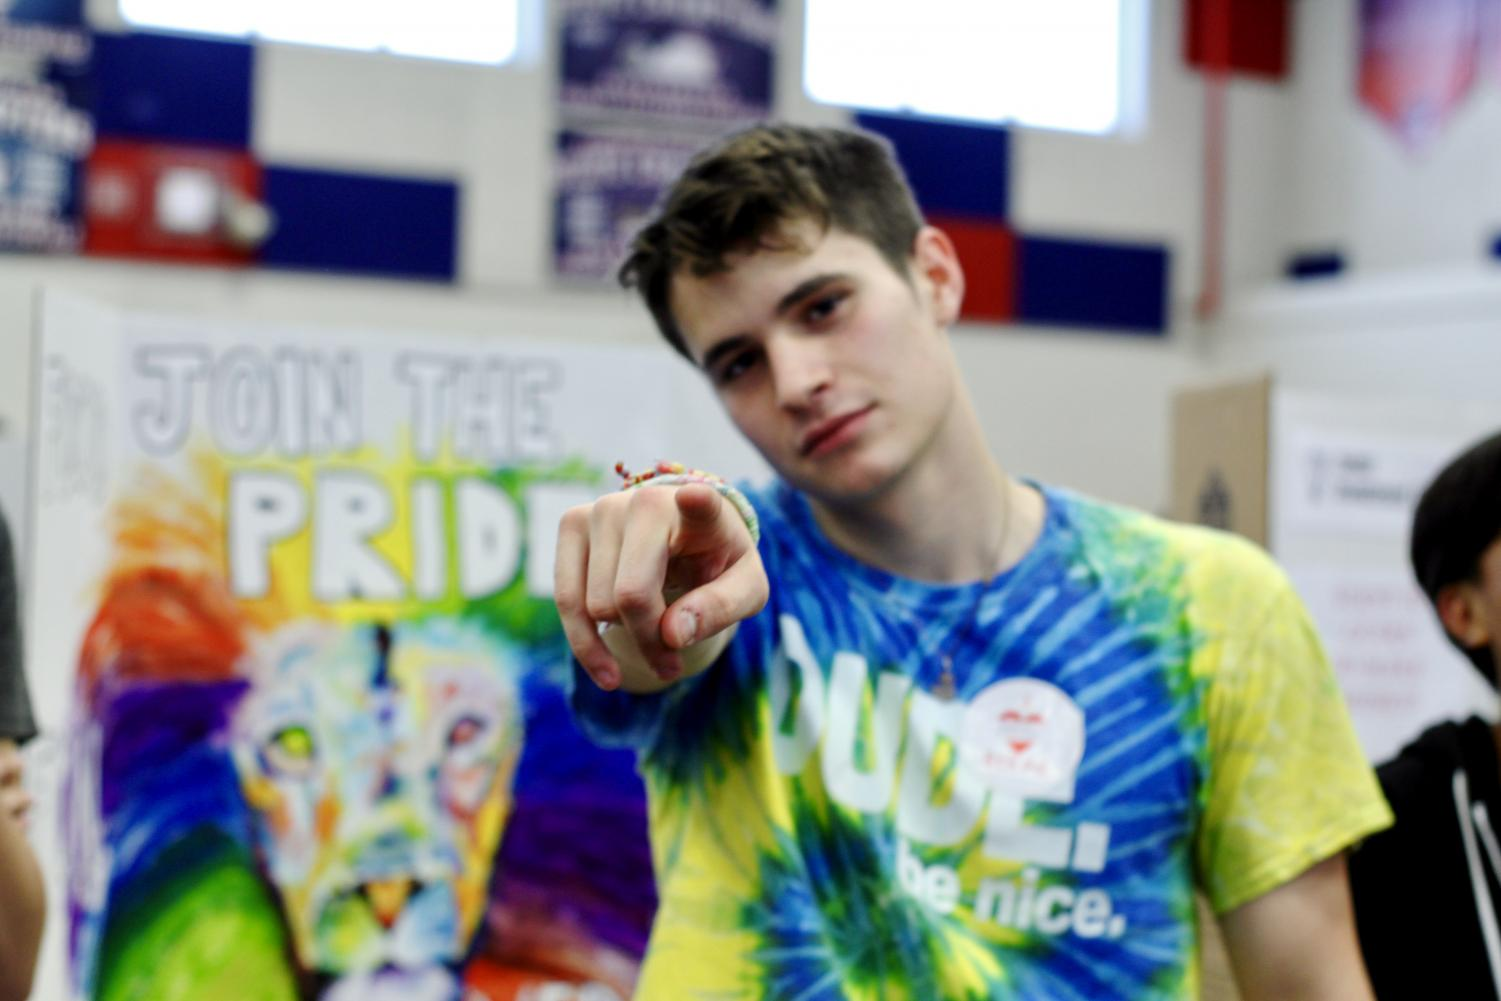 Senior%2C+Luc+Sequeira%2C+shows+us+his+dance+moves+while+promoting+the+GSA.